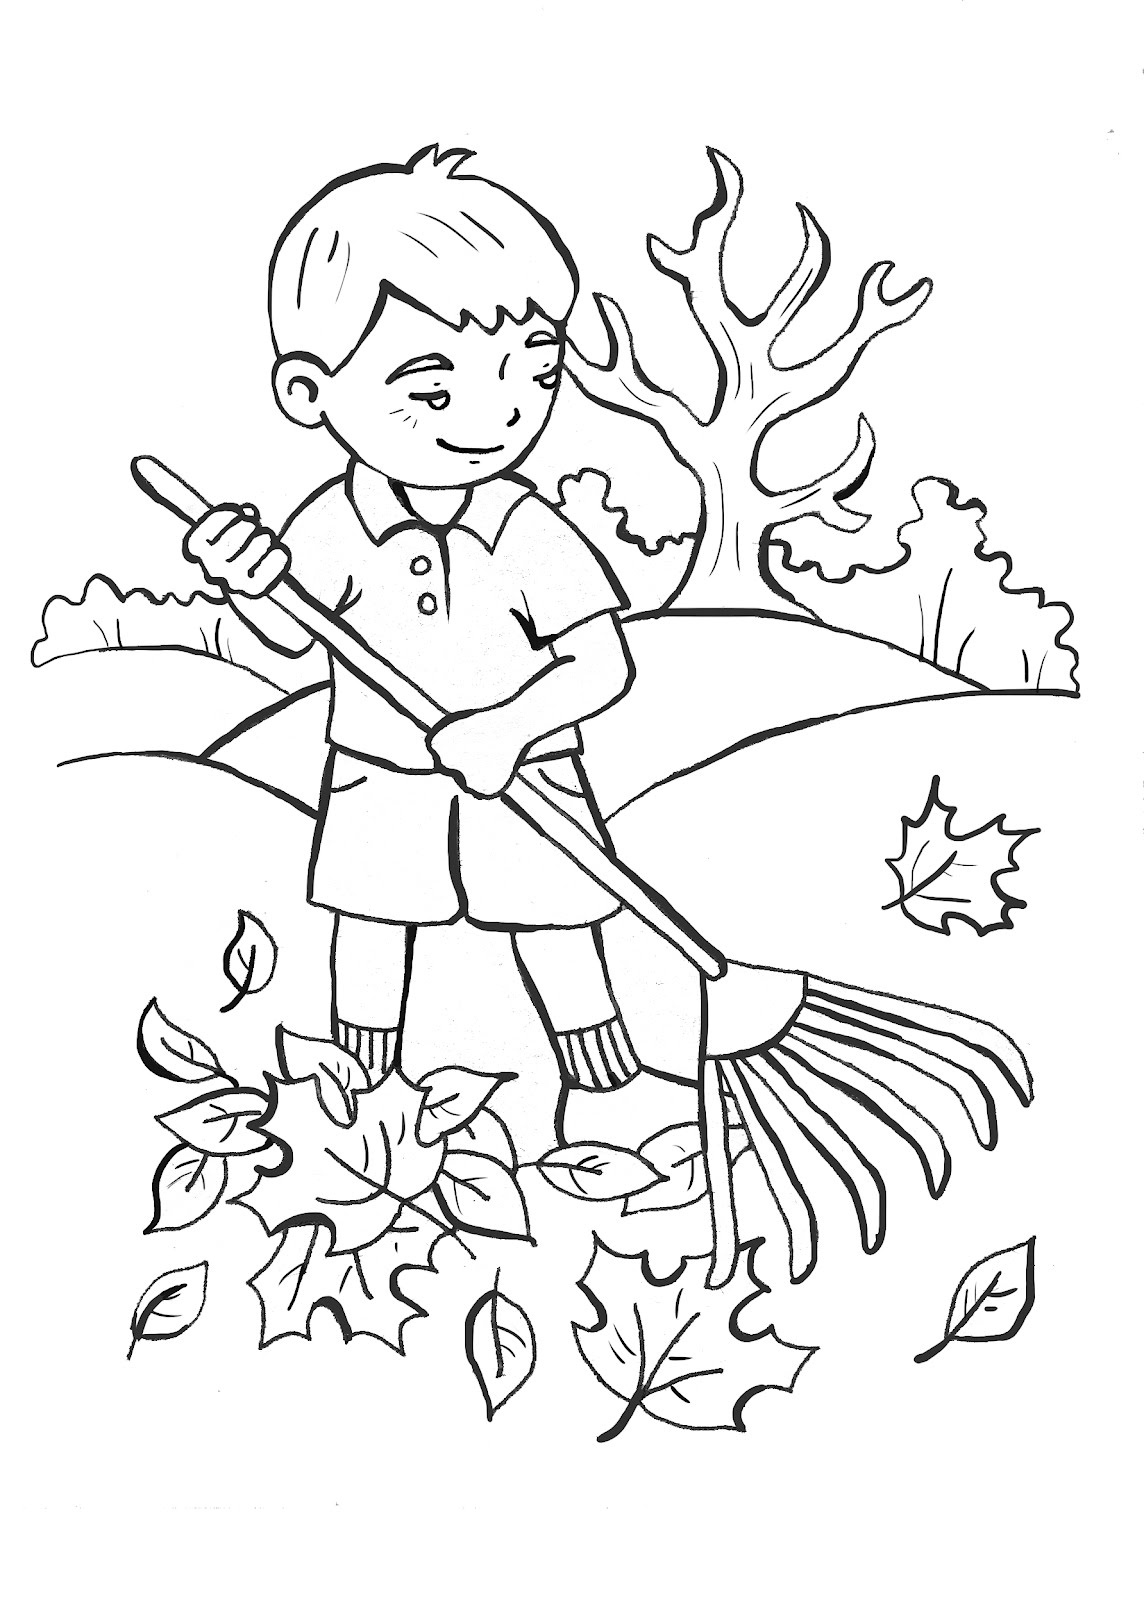 Free coloring pages on forgiveness - 511f03342d2ccdff Middot Lds Coloring Pages 2016 2008